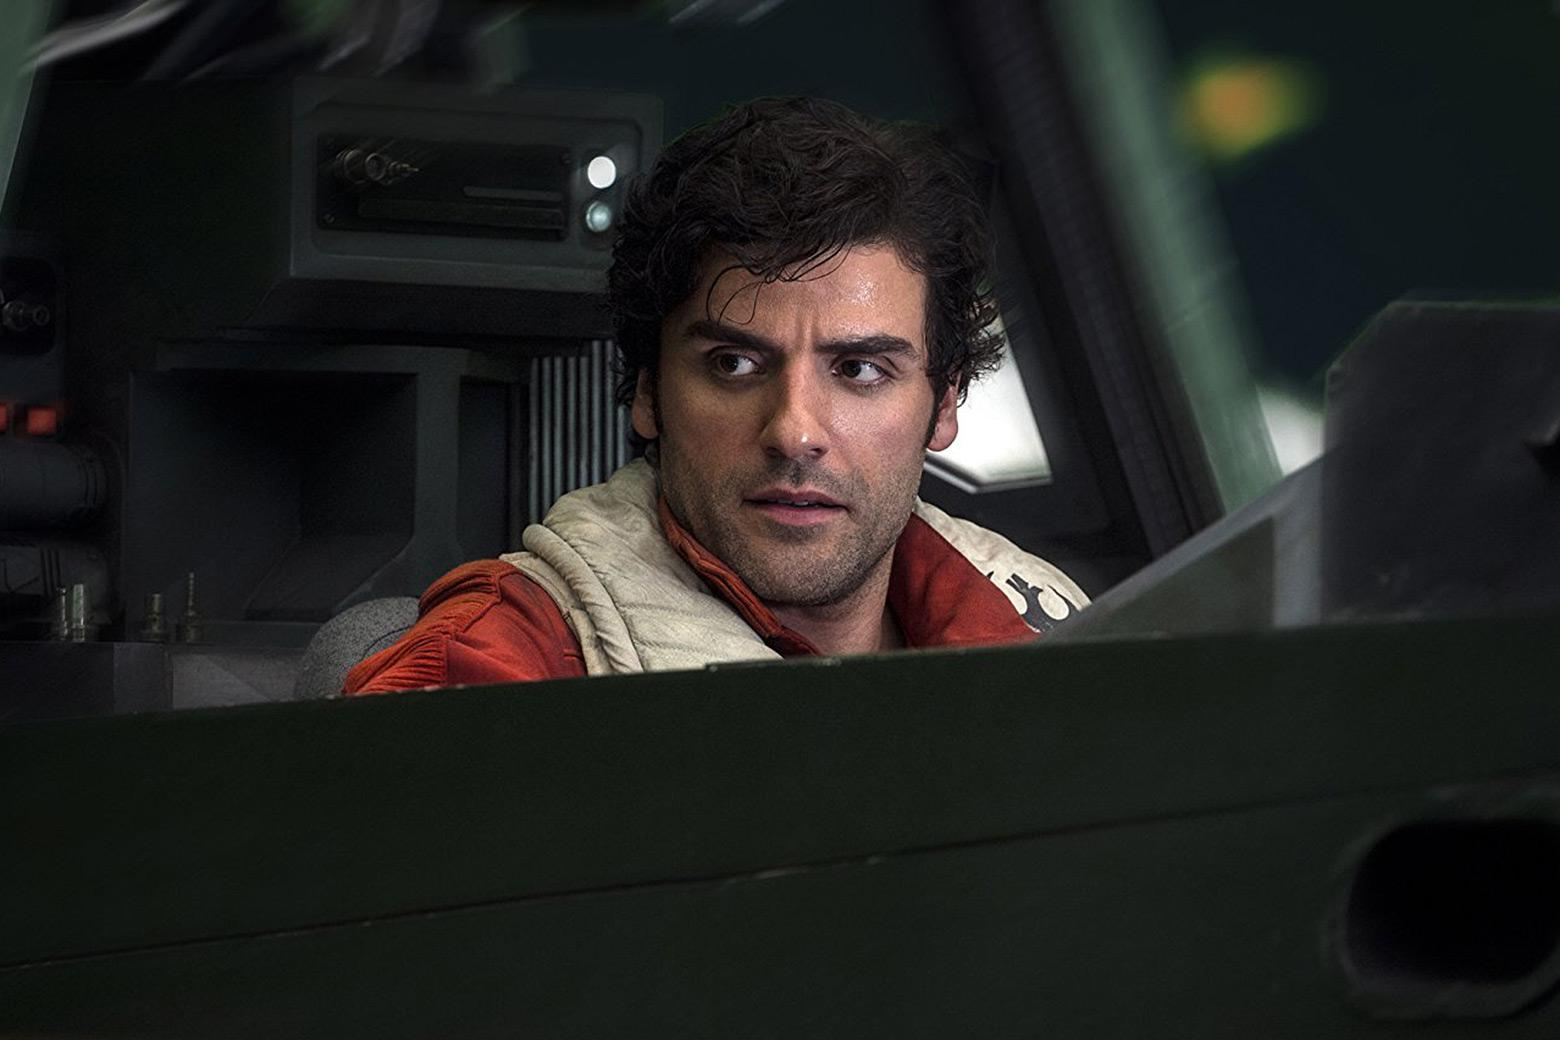 Oscar Isaac as Poe Dameron in Star Wars: Episode VIII - The Last Jedi.